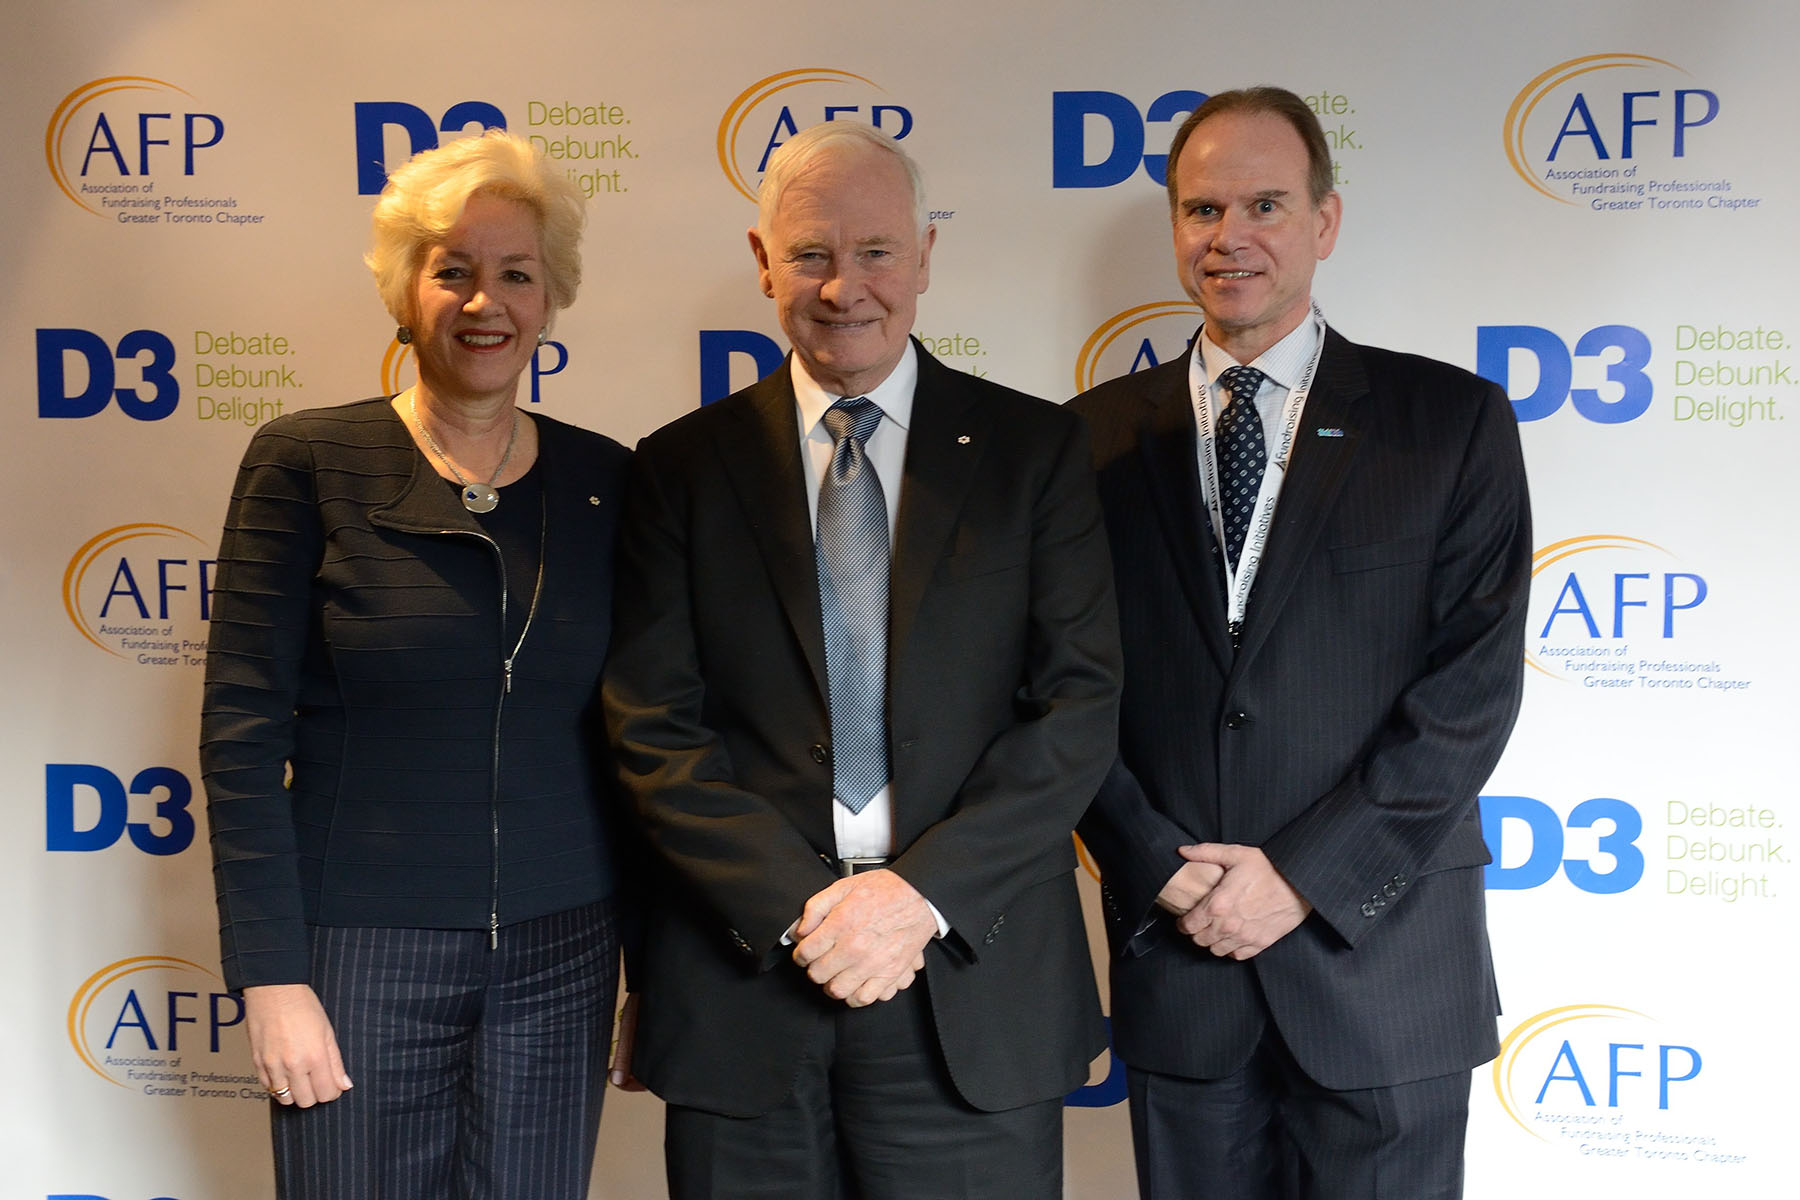 The Governor General is pictured with the Co-Chairs of the D3 Ladership Conference, Annette Verschuren, Chair and CEO of NRStor Inc. (left), and Ted Garrard, President and CEO of SickKids Foundation (right).